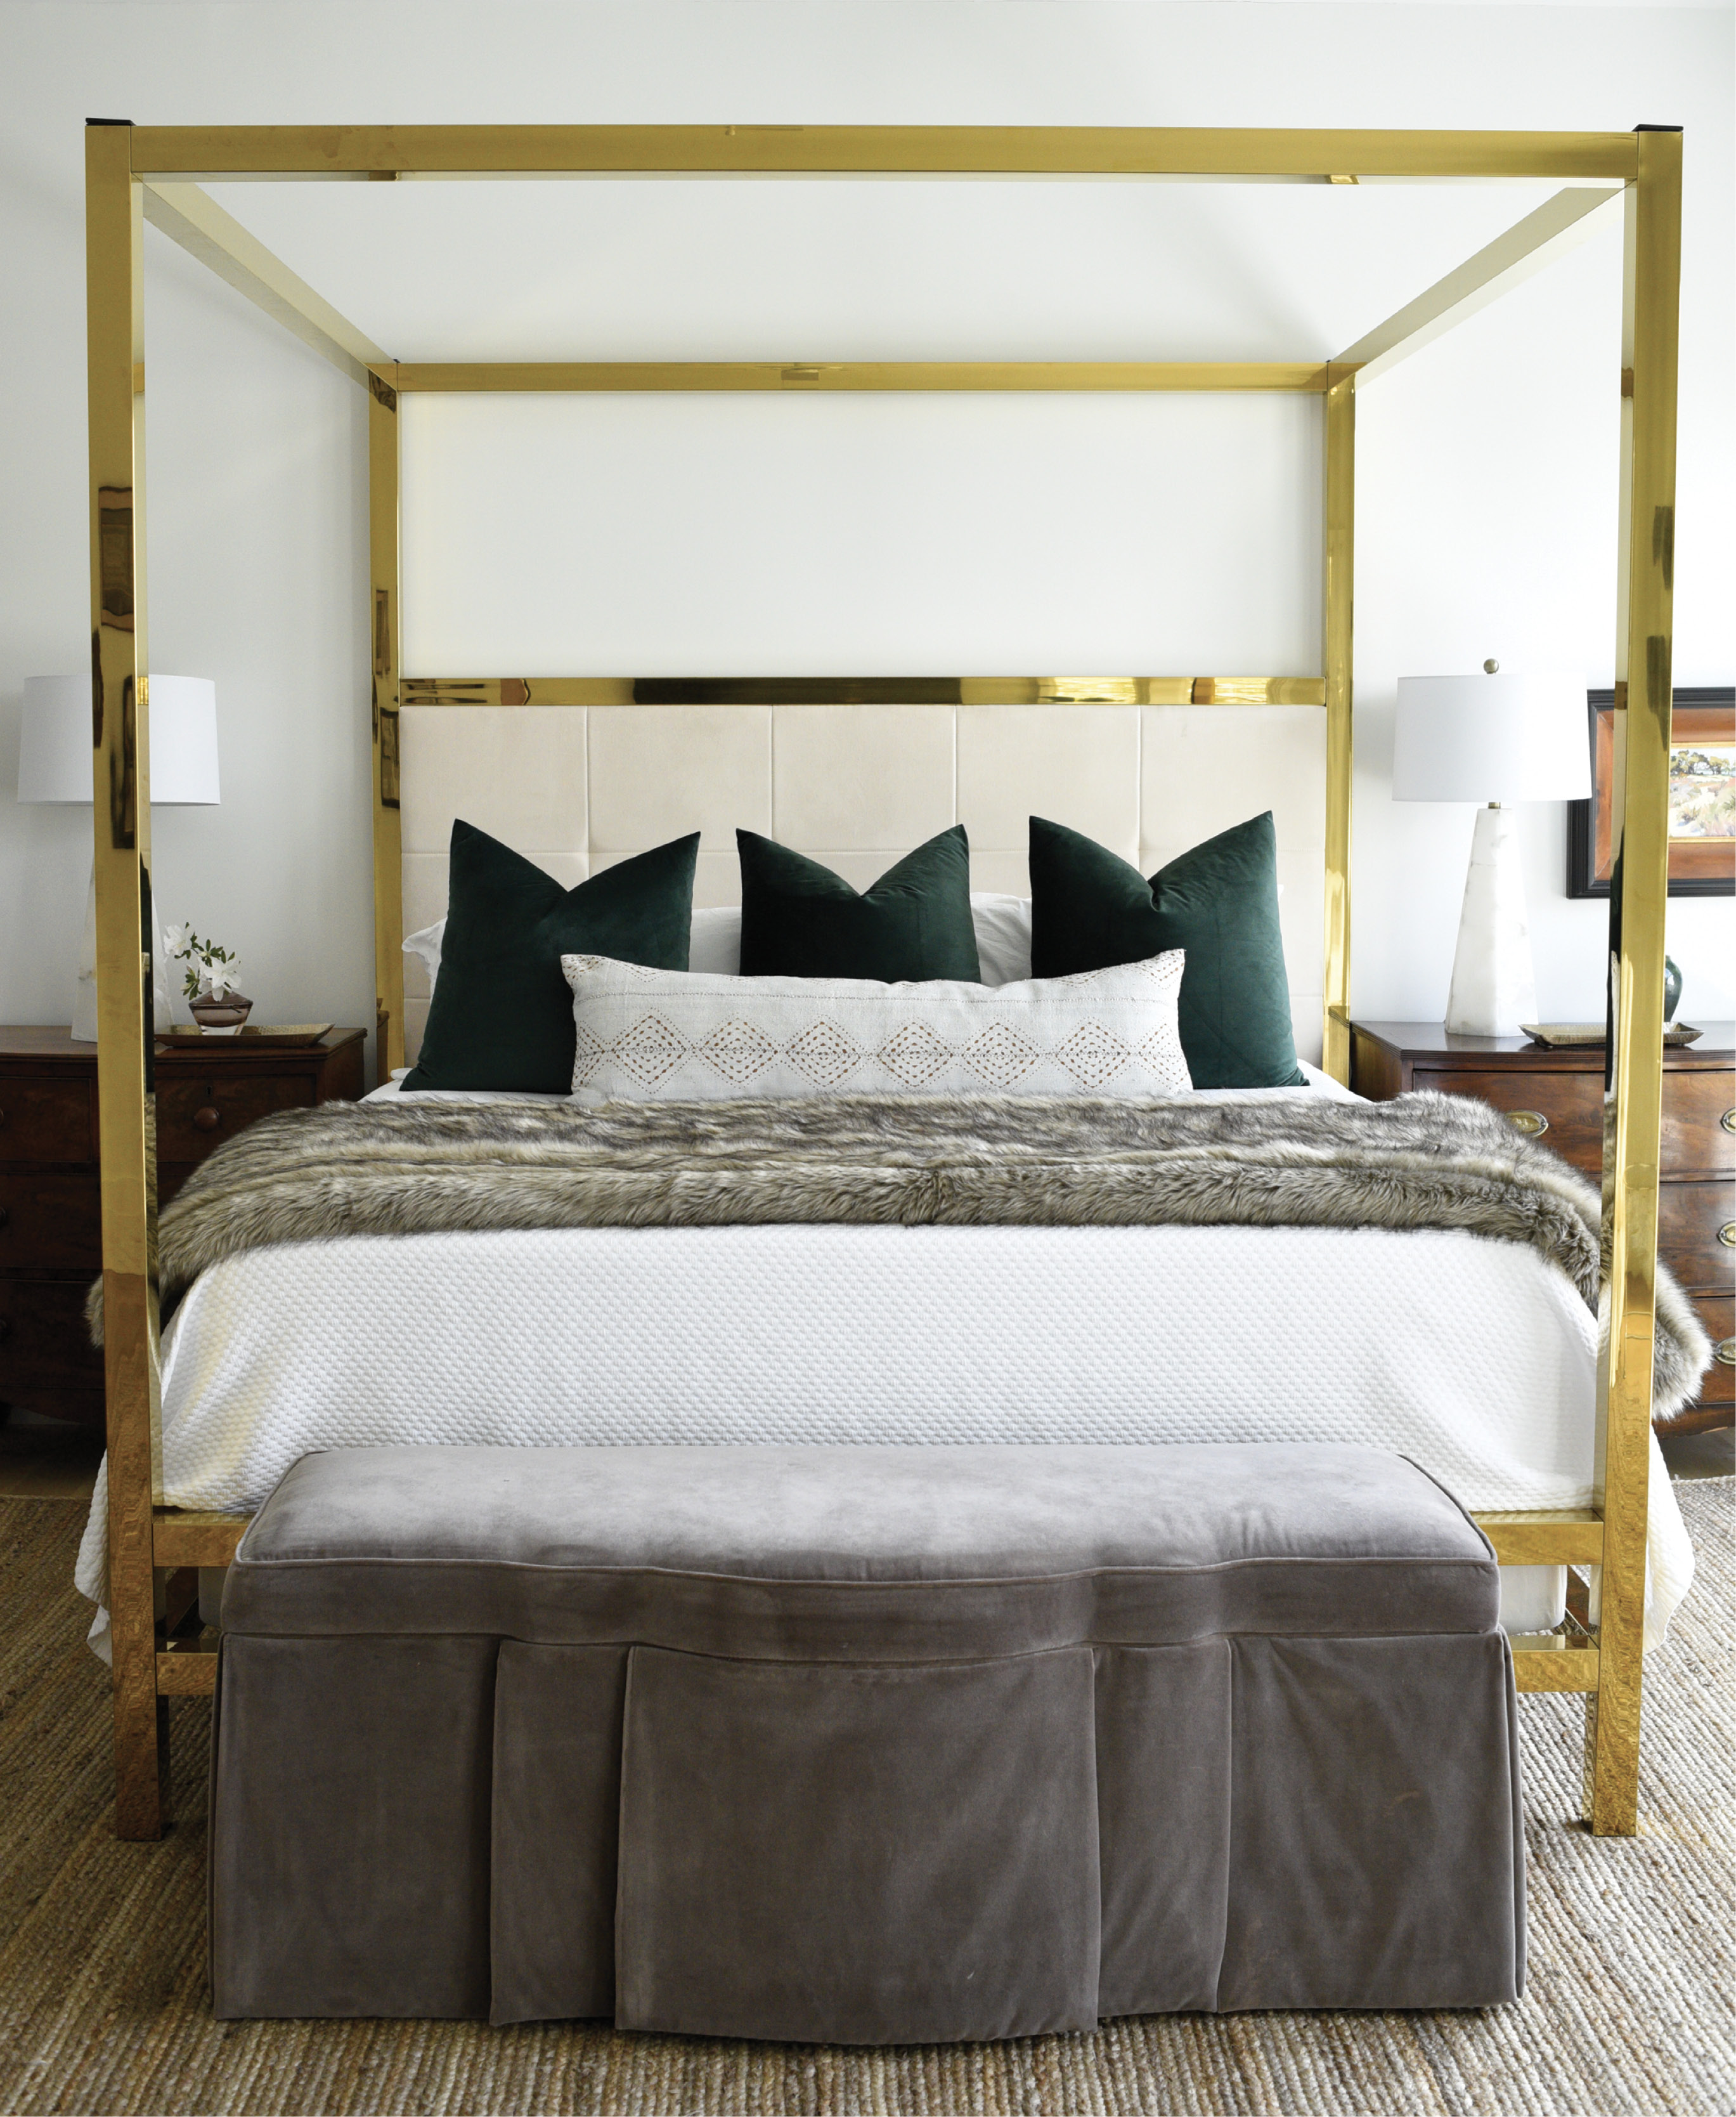 Alix's love of brass extends to the master bedroom where this vintage four-poster bed makes a big statement. Dramatic green velvet pillows stand out against the custom sueded headboard as well as Matouk bed linens from GDC Home—all capped off by a velvet footstool from Acquisitions Interiors.